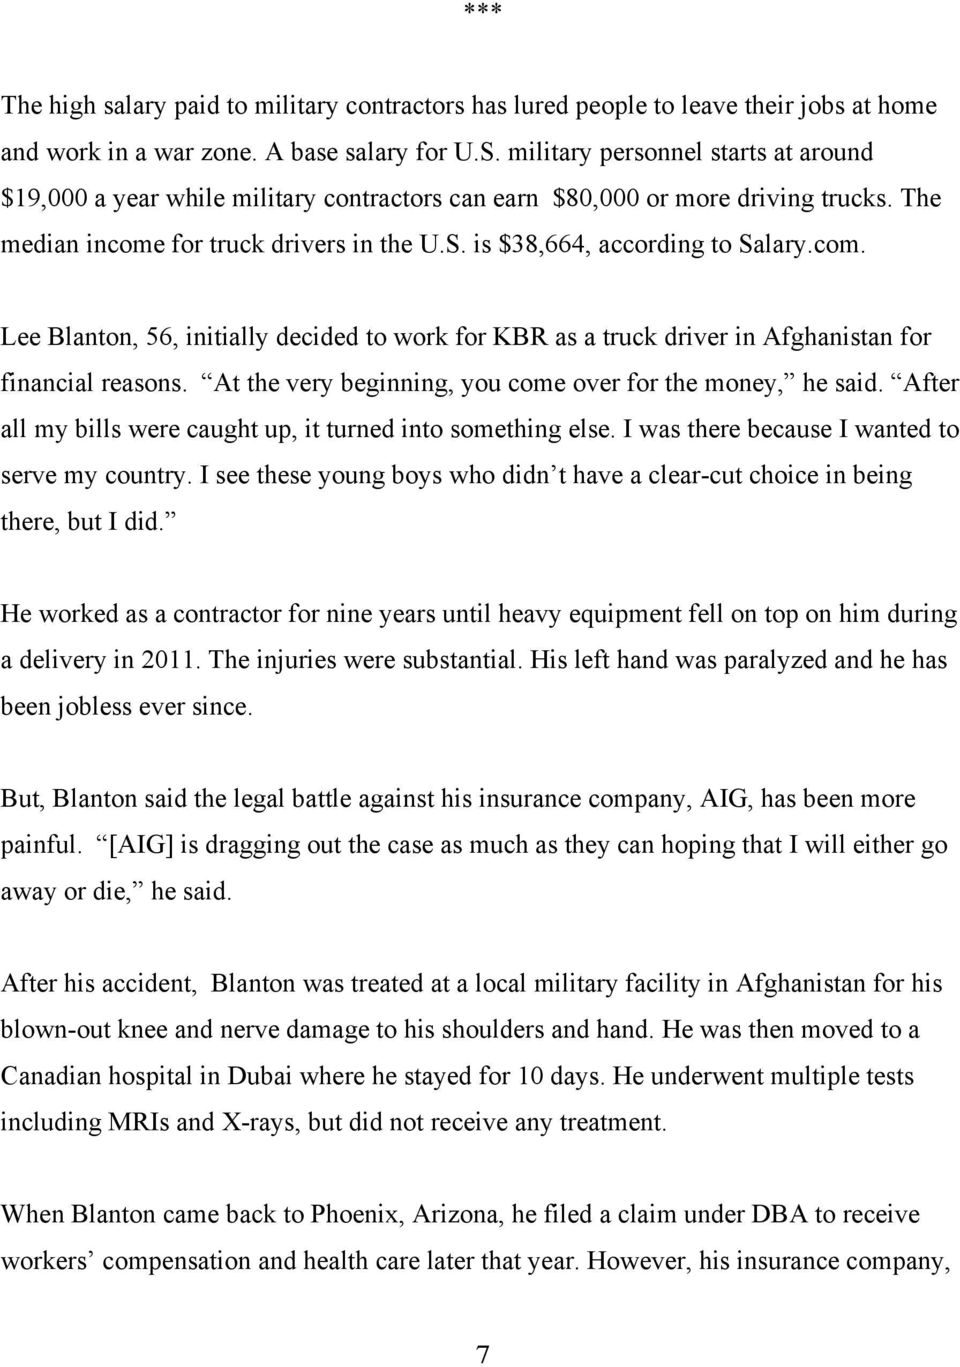 com. Lee Blanton, 56, initially decided to work for KBR as a truck driver in Afghanistan for financial reasons. At the very beginning, you come over for the money, he said.